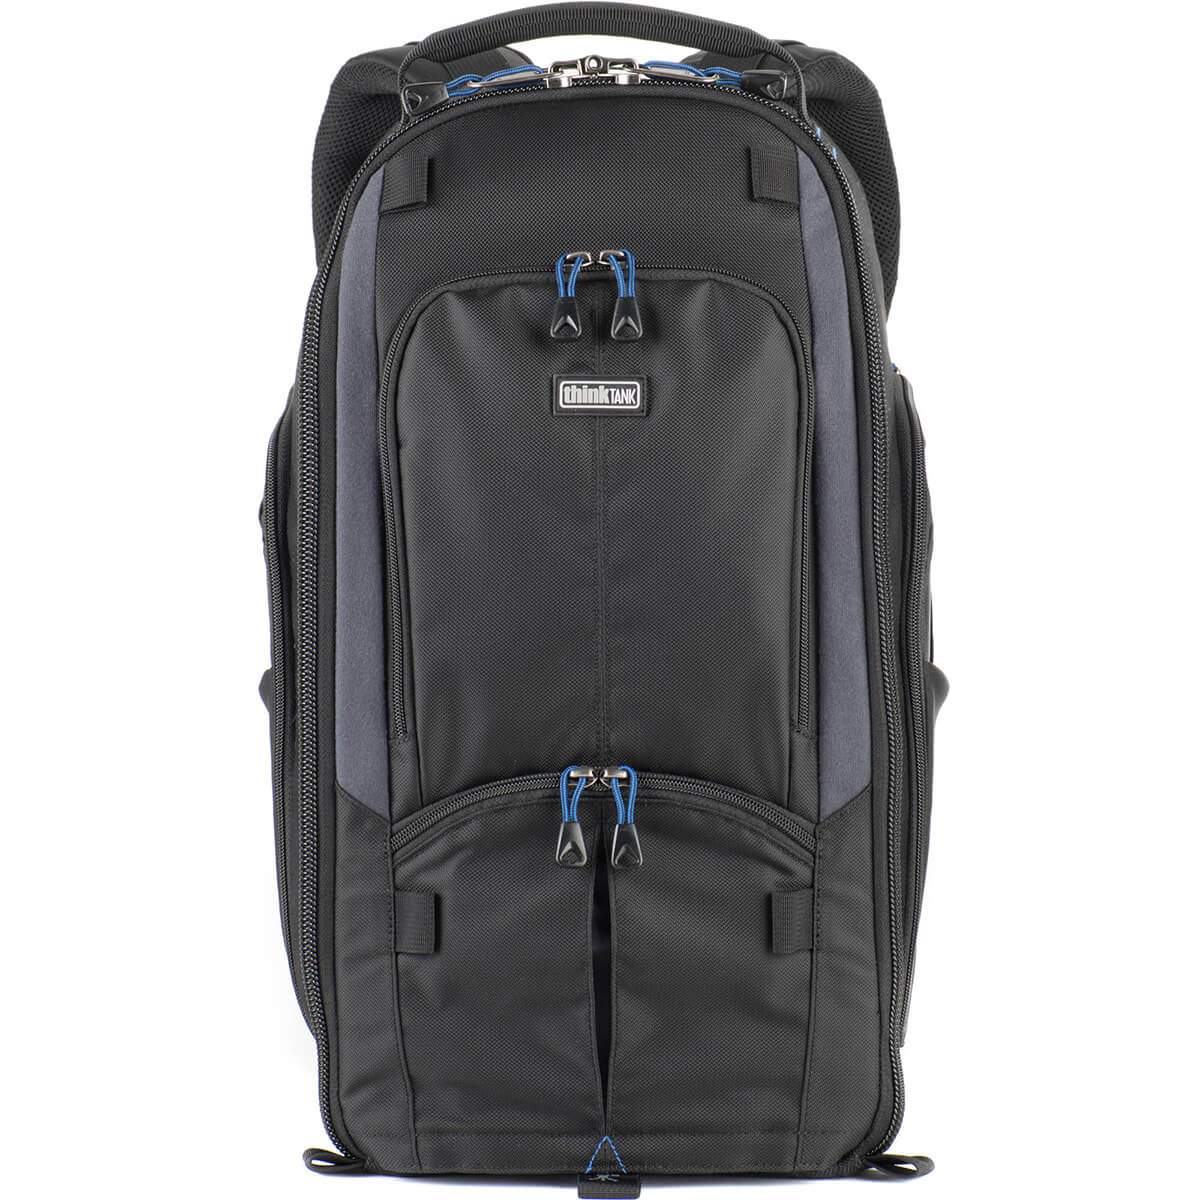 Best Camera Backpacks for Travel - Think Tank Photo StreetWalker Pro